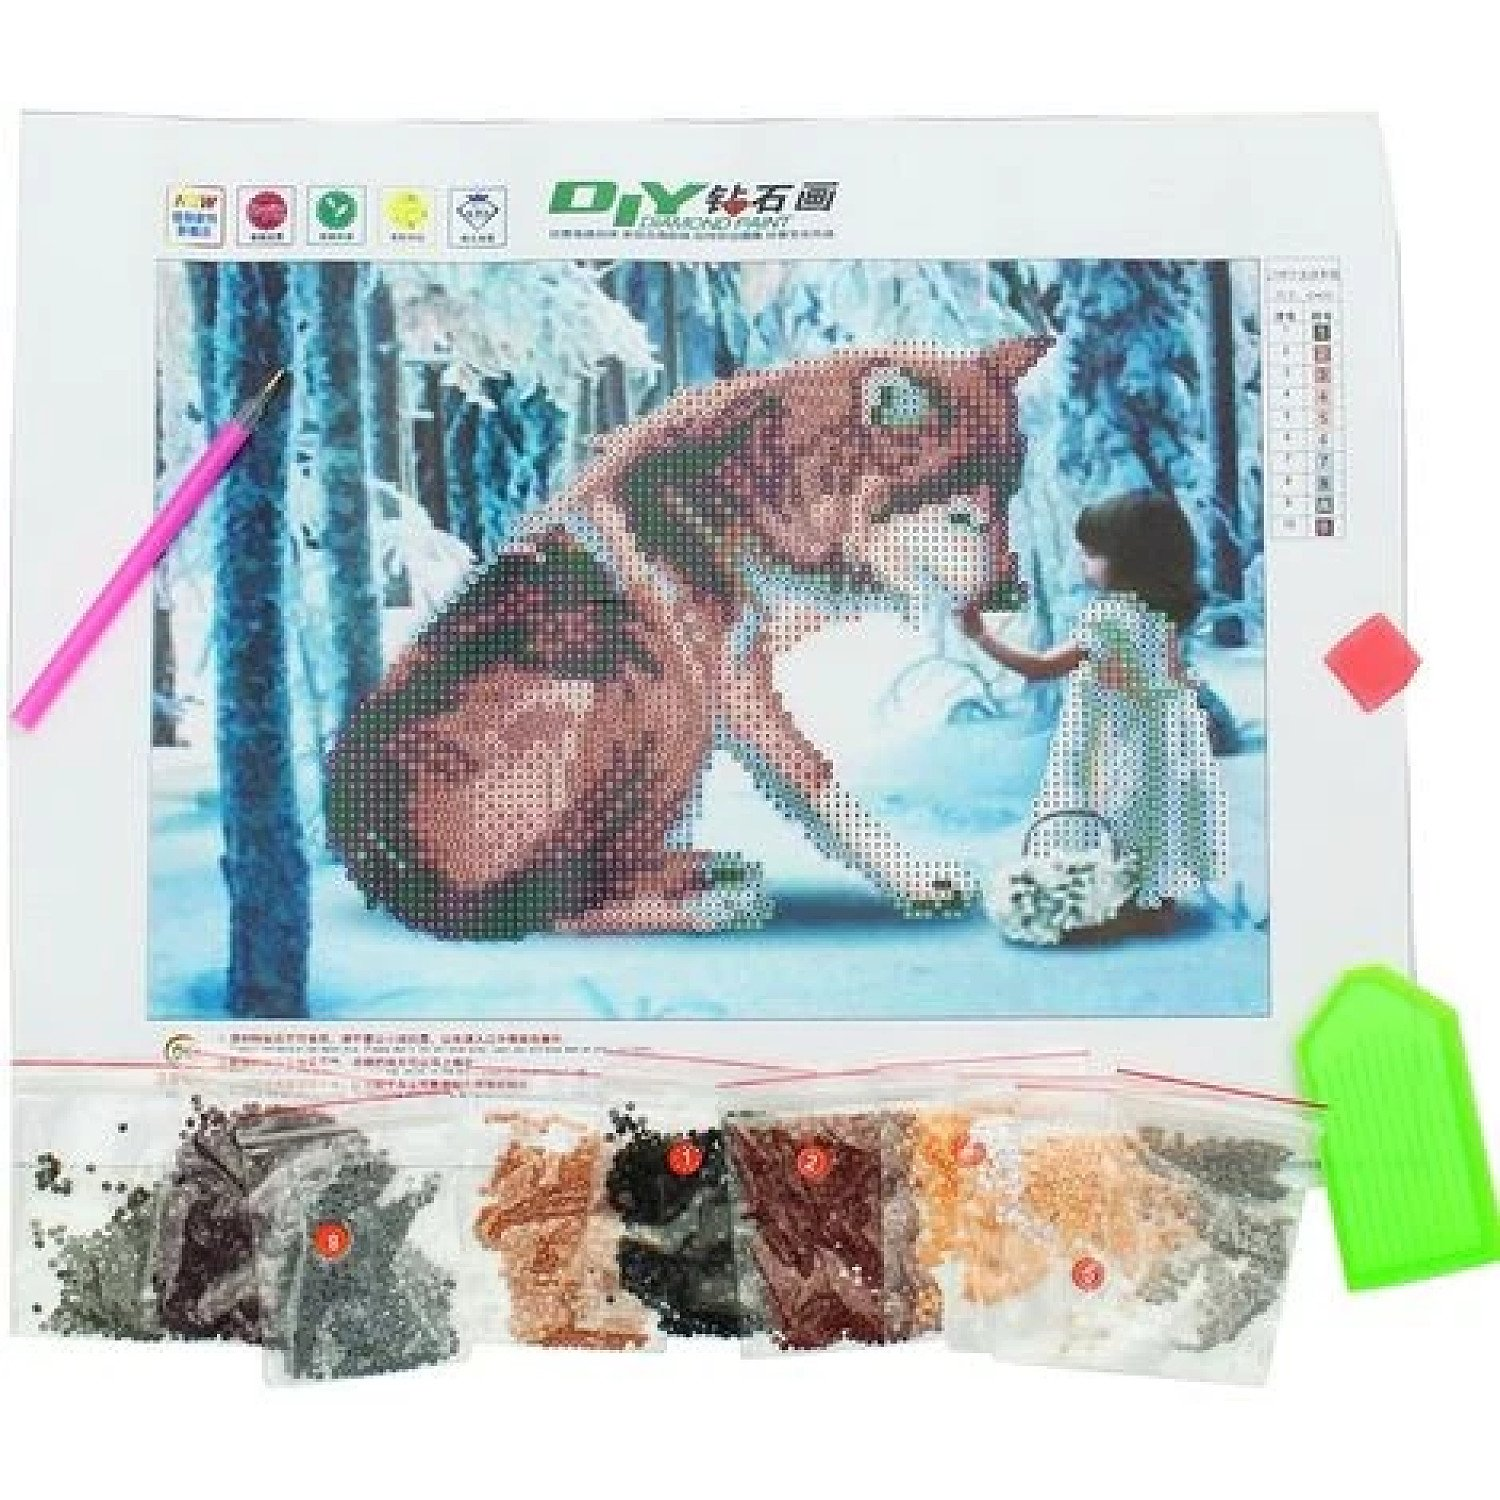 30 x 40 Cm Diy 5D Diamond Wolf Girl Embroidery Painting Paste Stitch House Free Postage